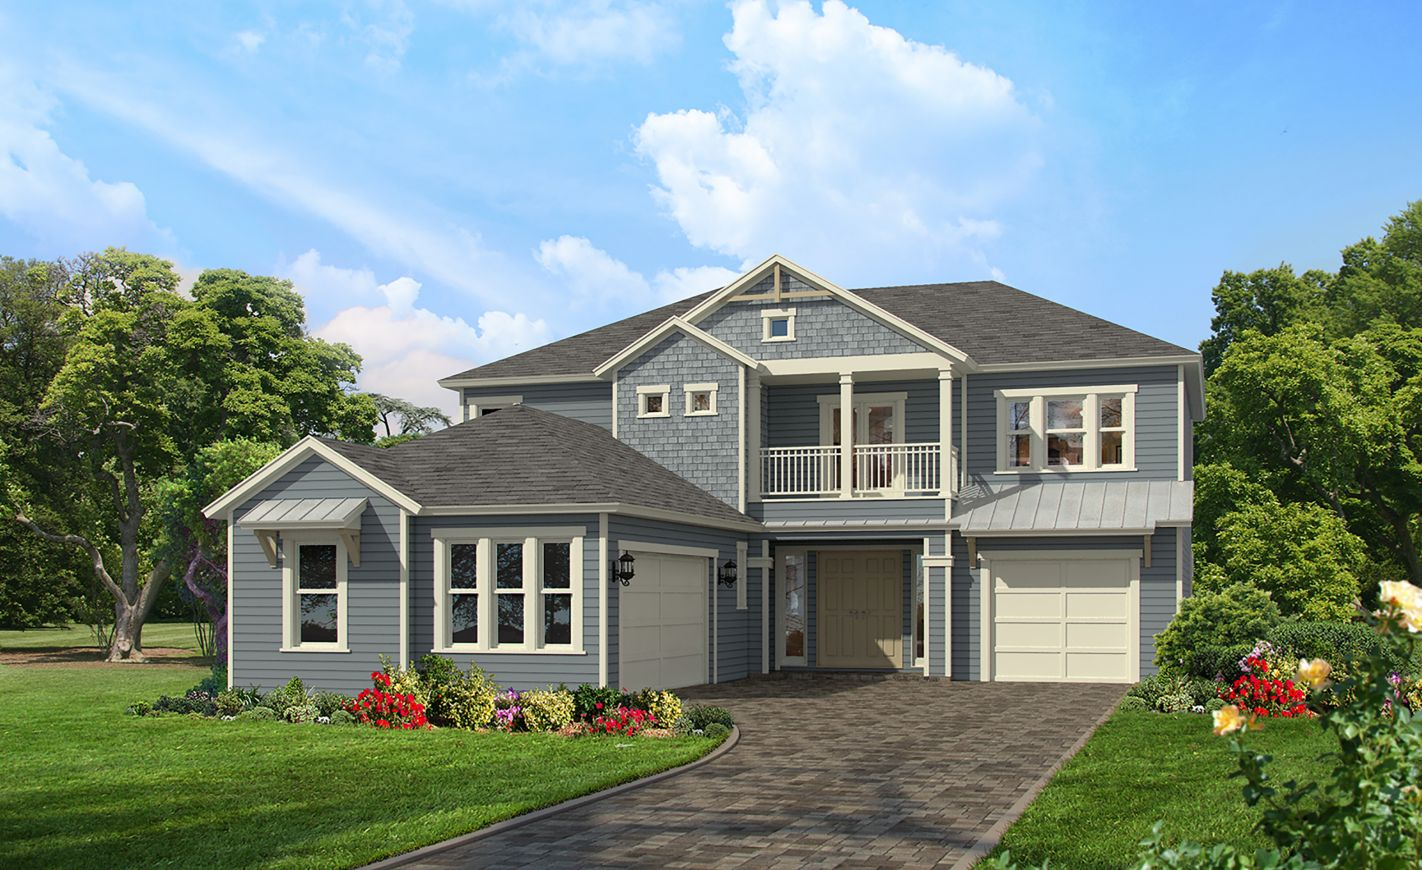 Nocatee Homes for Sale - The Victoria at Nocatee